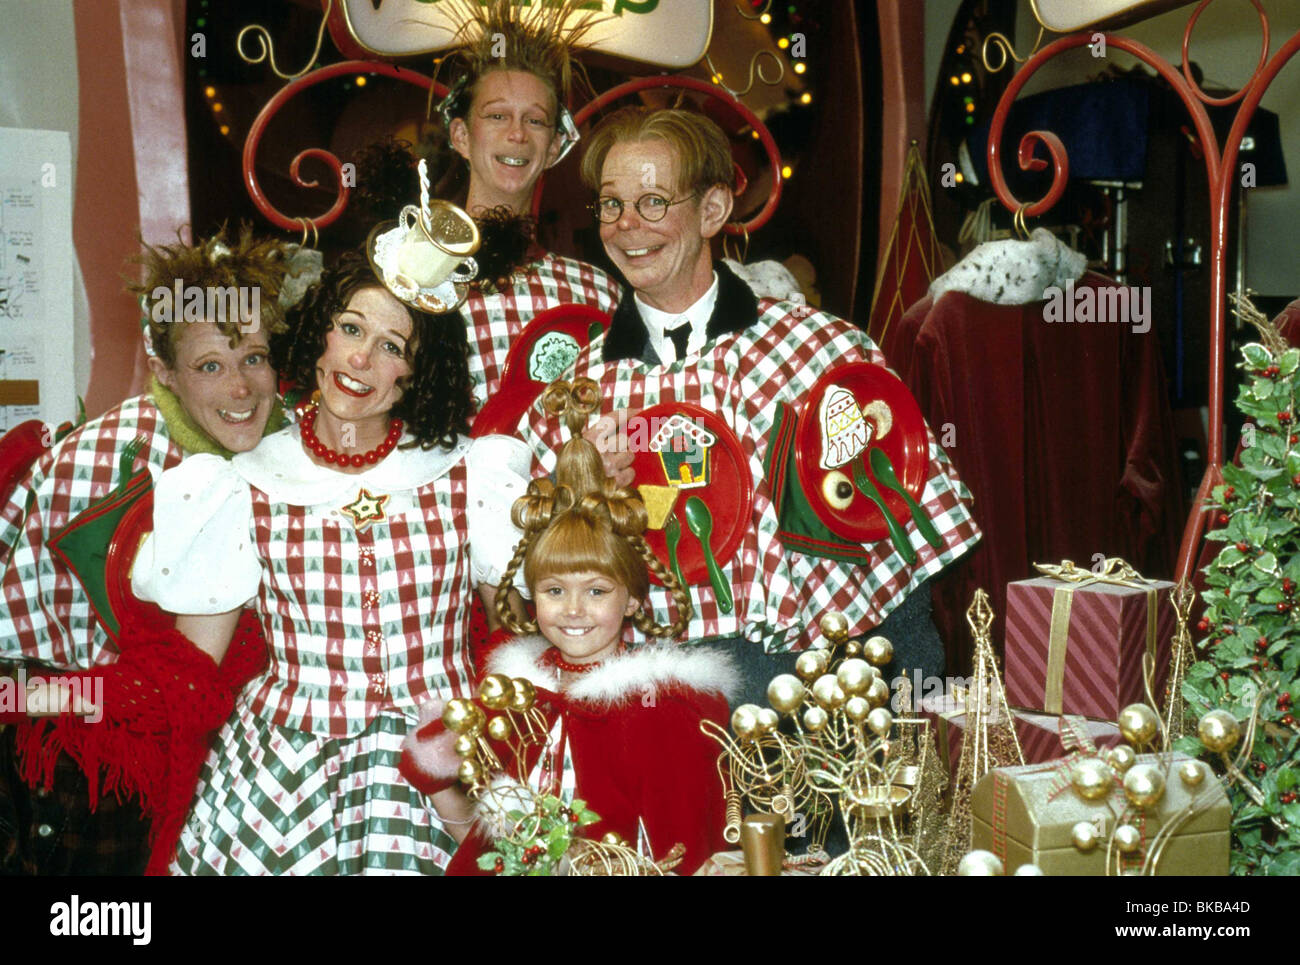 how the grinch stole christmas 2000 t j thyne molly shannon jeremy howard - Taylor Momsen How The Grinch Stole Christmas